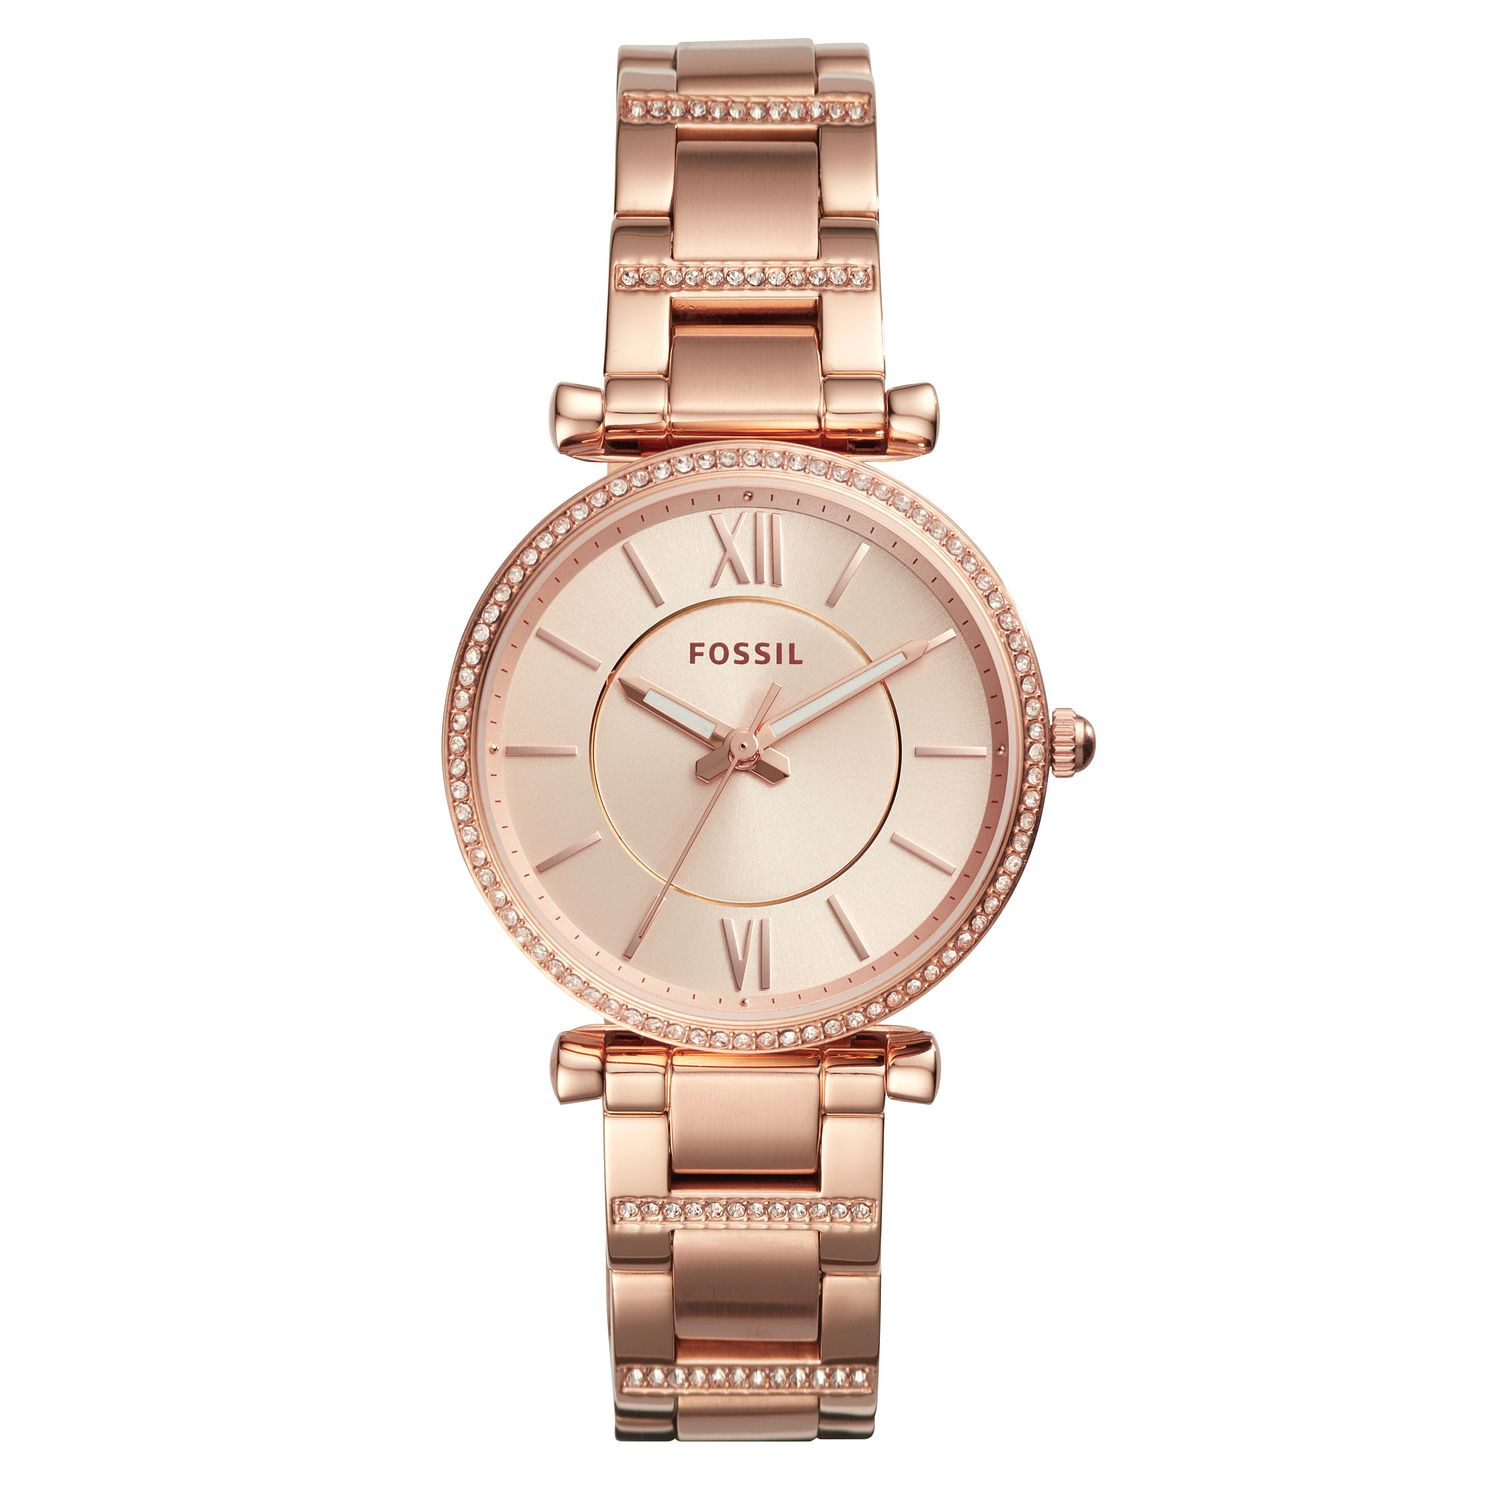 Fossil Carlie Ladies' Rose Gold Tone Bracelet Watch - Product number 4166671